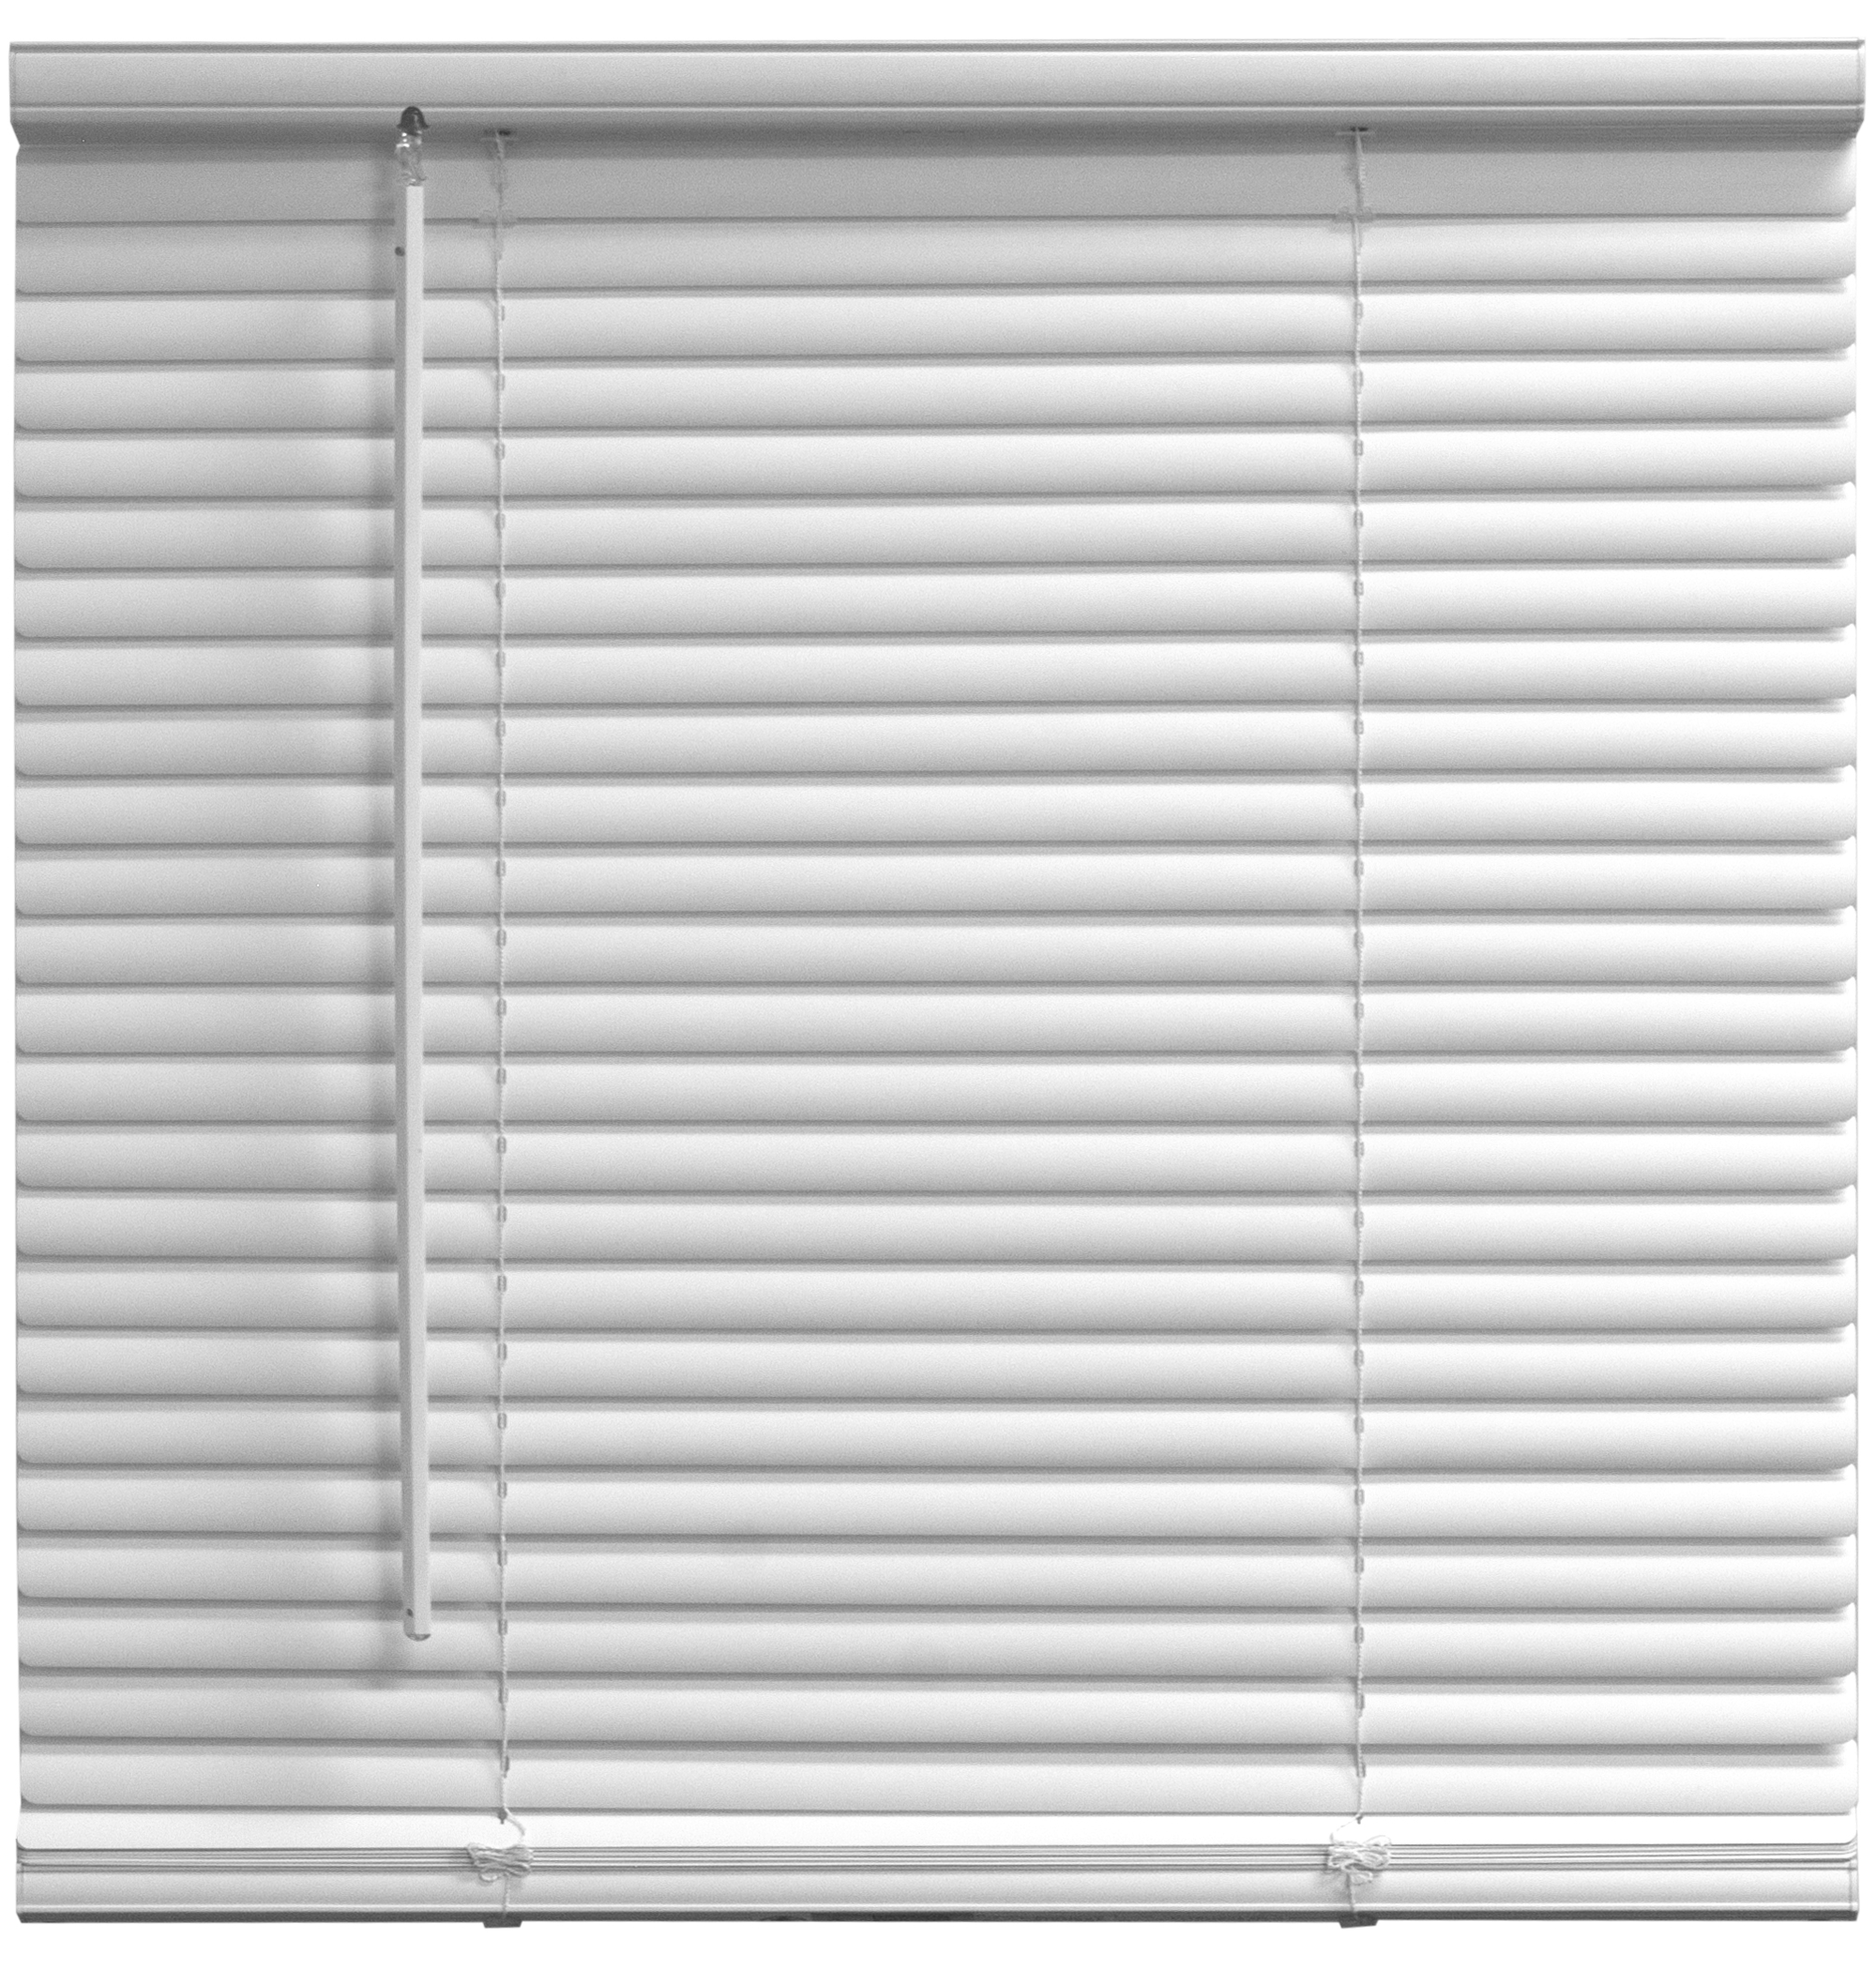 hampton inch thehomedepot blinds p blind aluminum mini bay